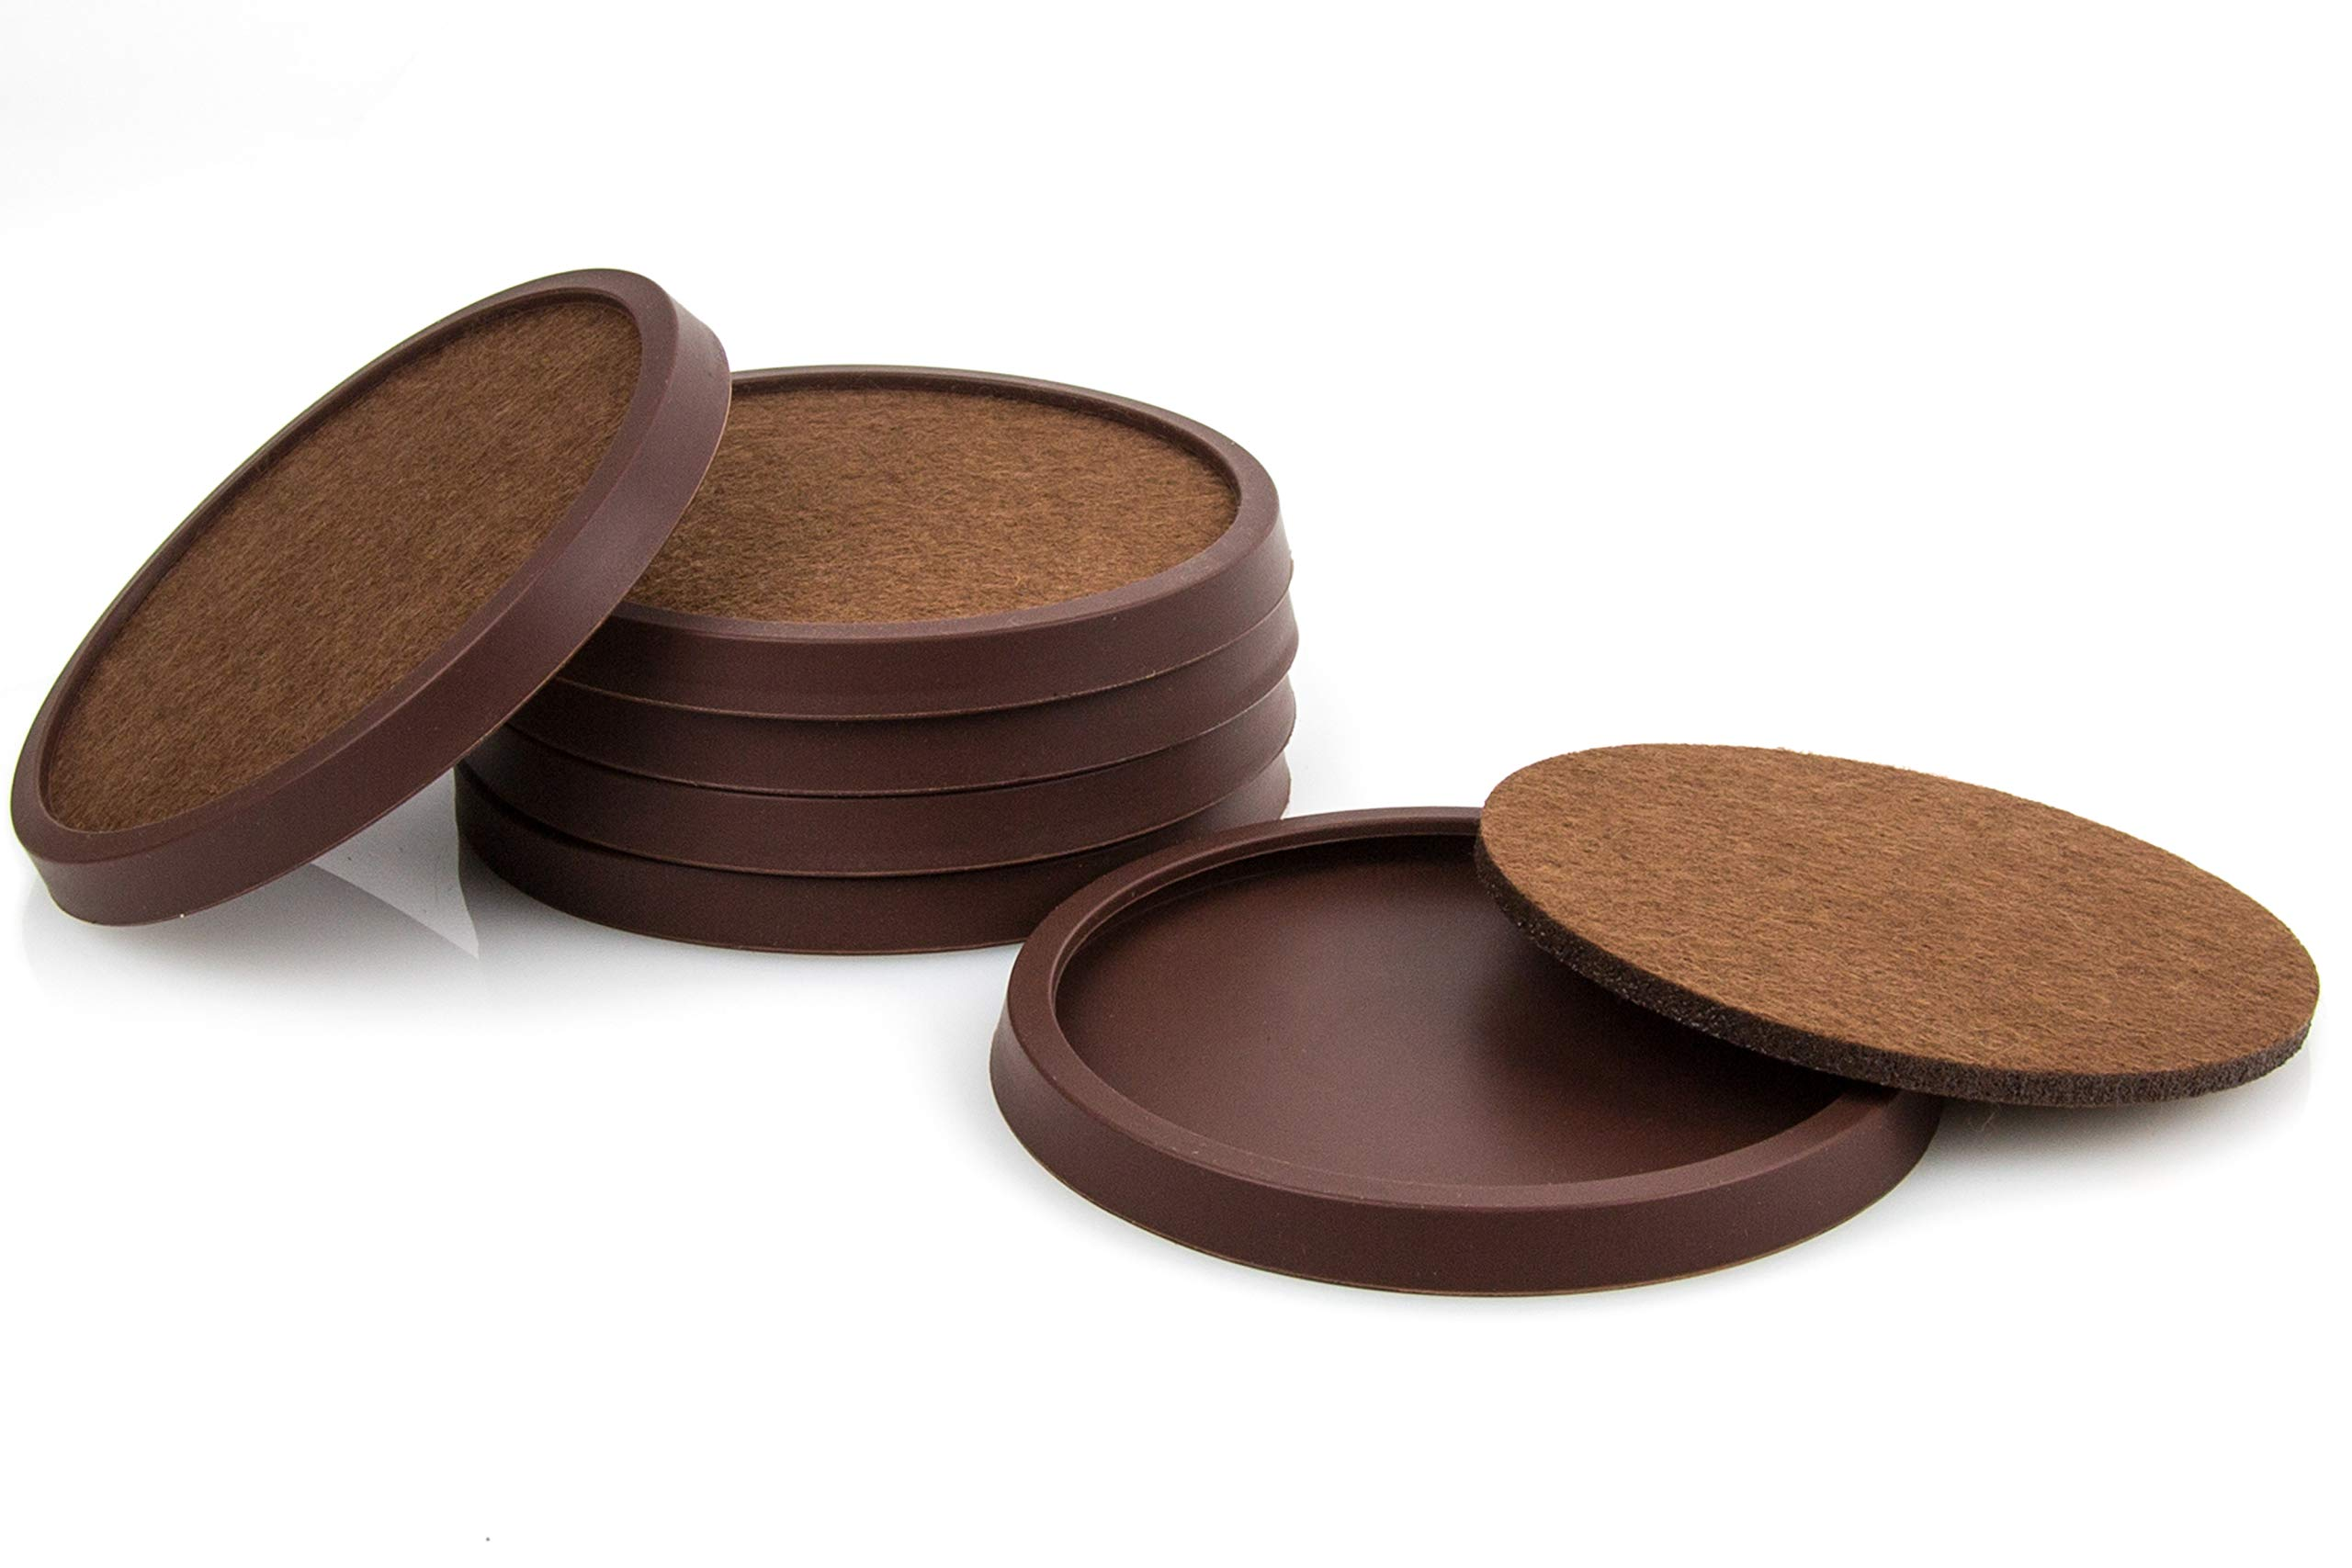 Silicone Drink Coasters with Absorbent Soft Felt Insert Set of 6 by Comfortena - Unique New Design Two in One Coaster (Rich Brown)